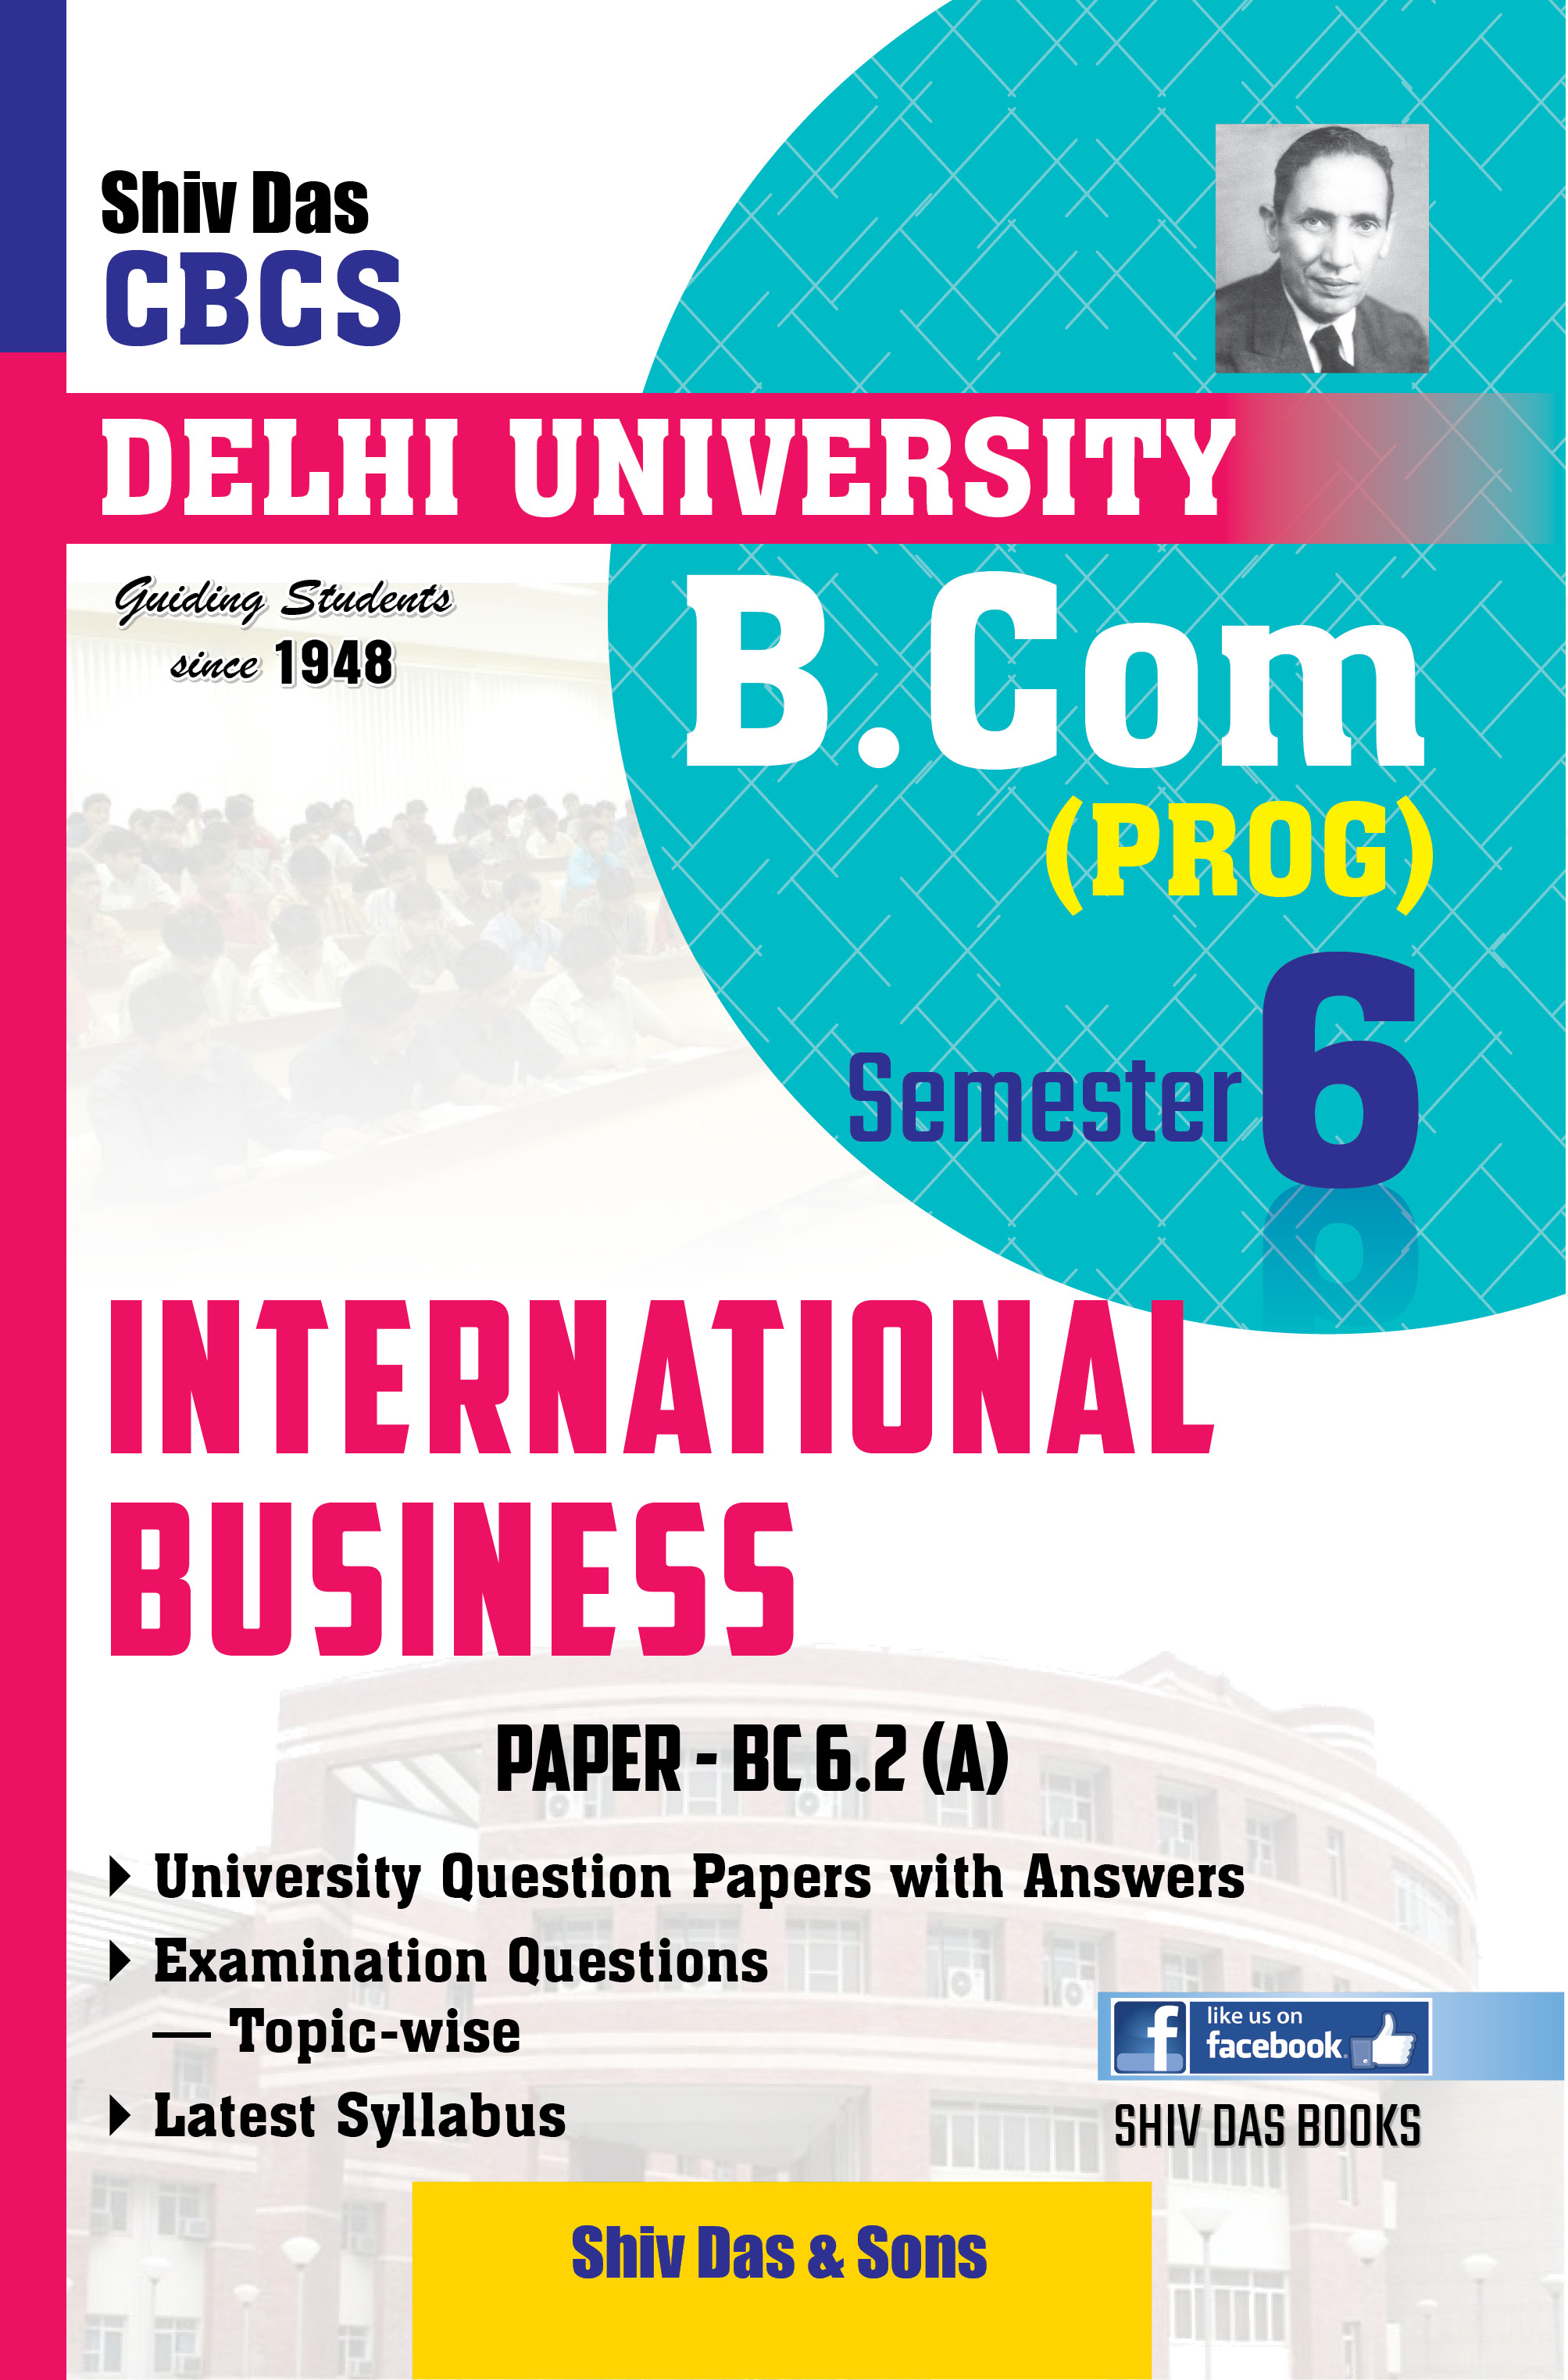 International Business for B.Com Prog Semester-6